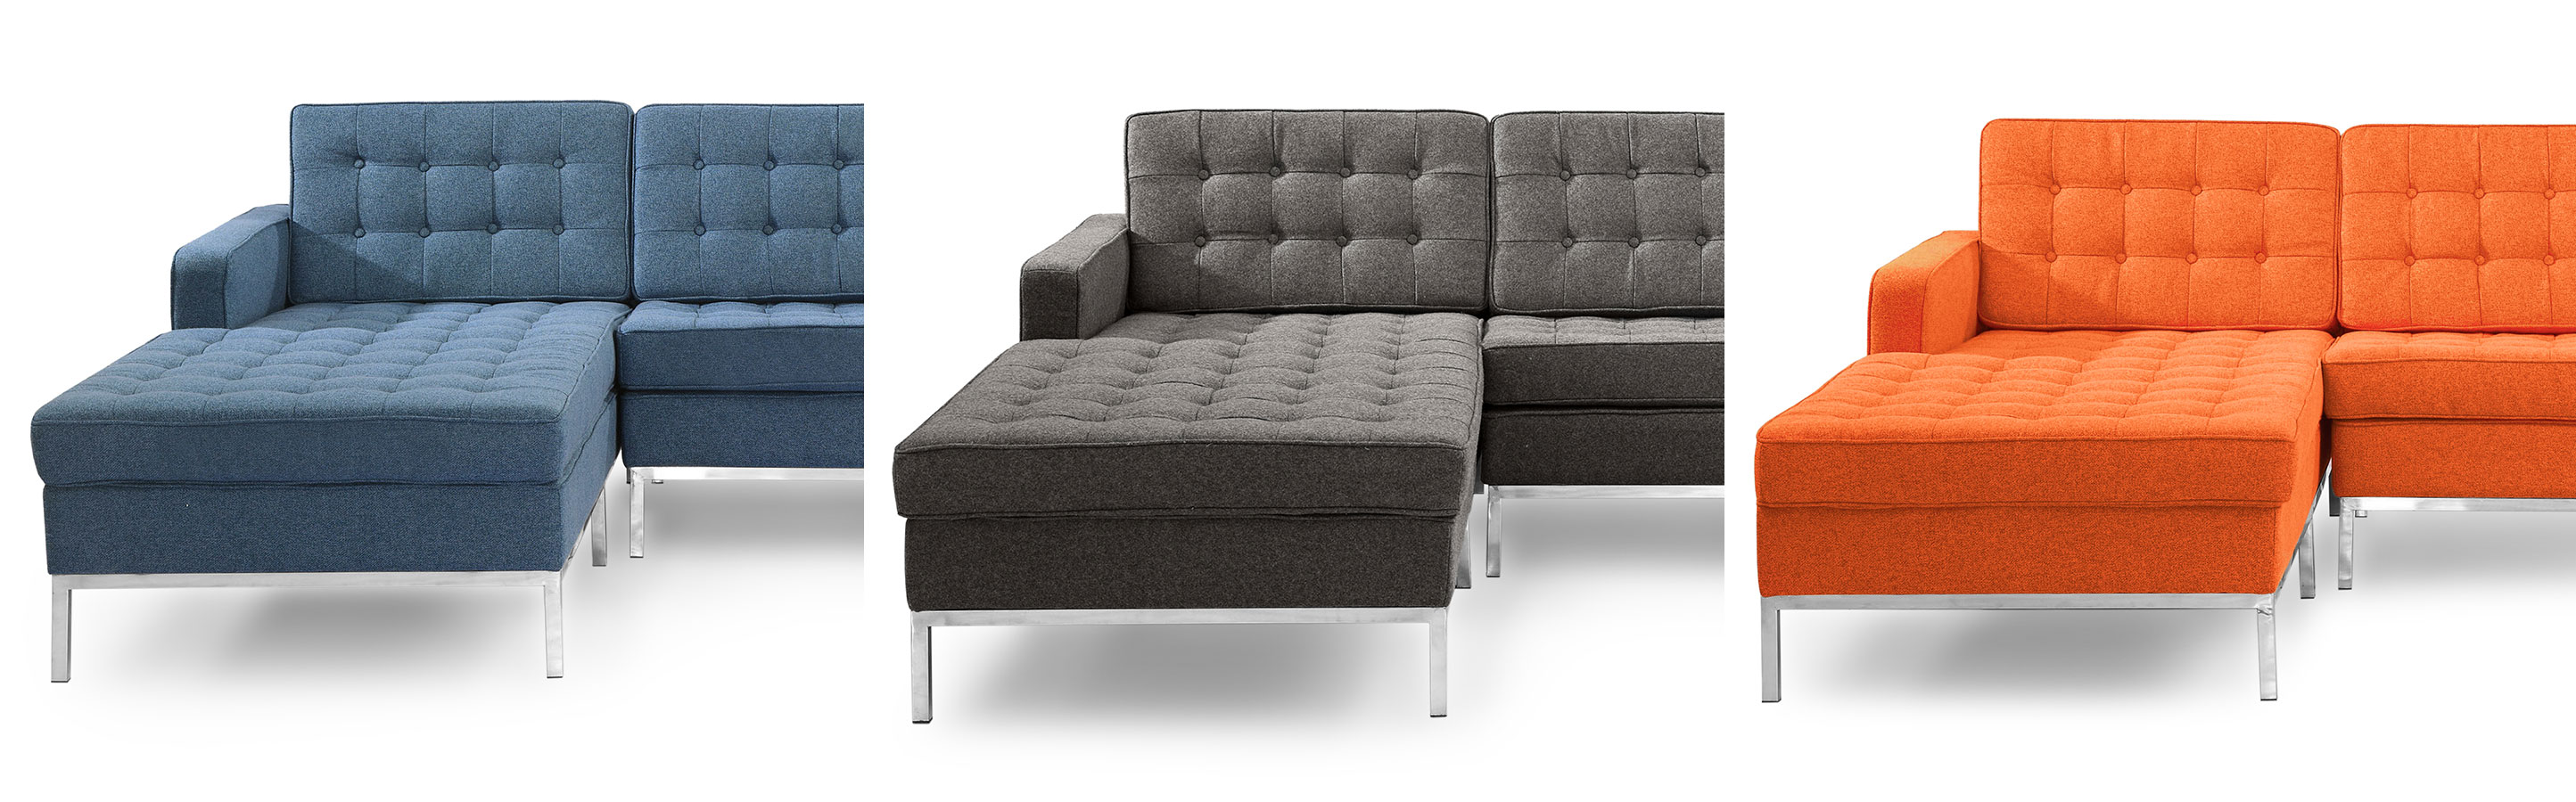 Cubix Modern Tufted Chaise Sofa Sectional